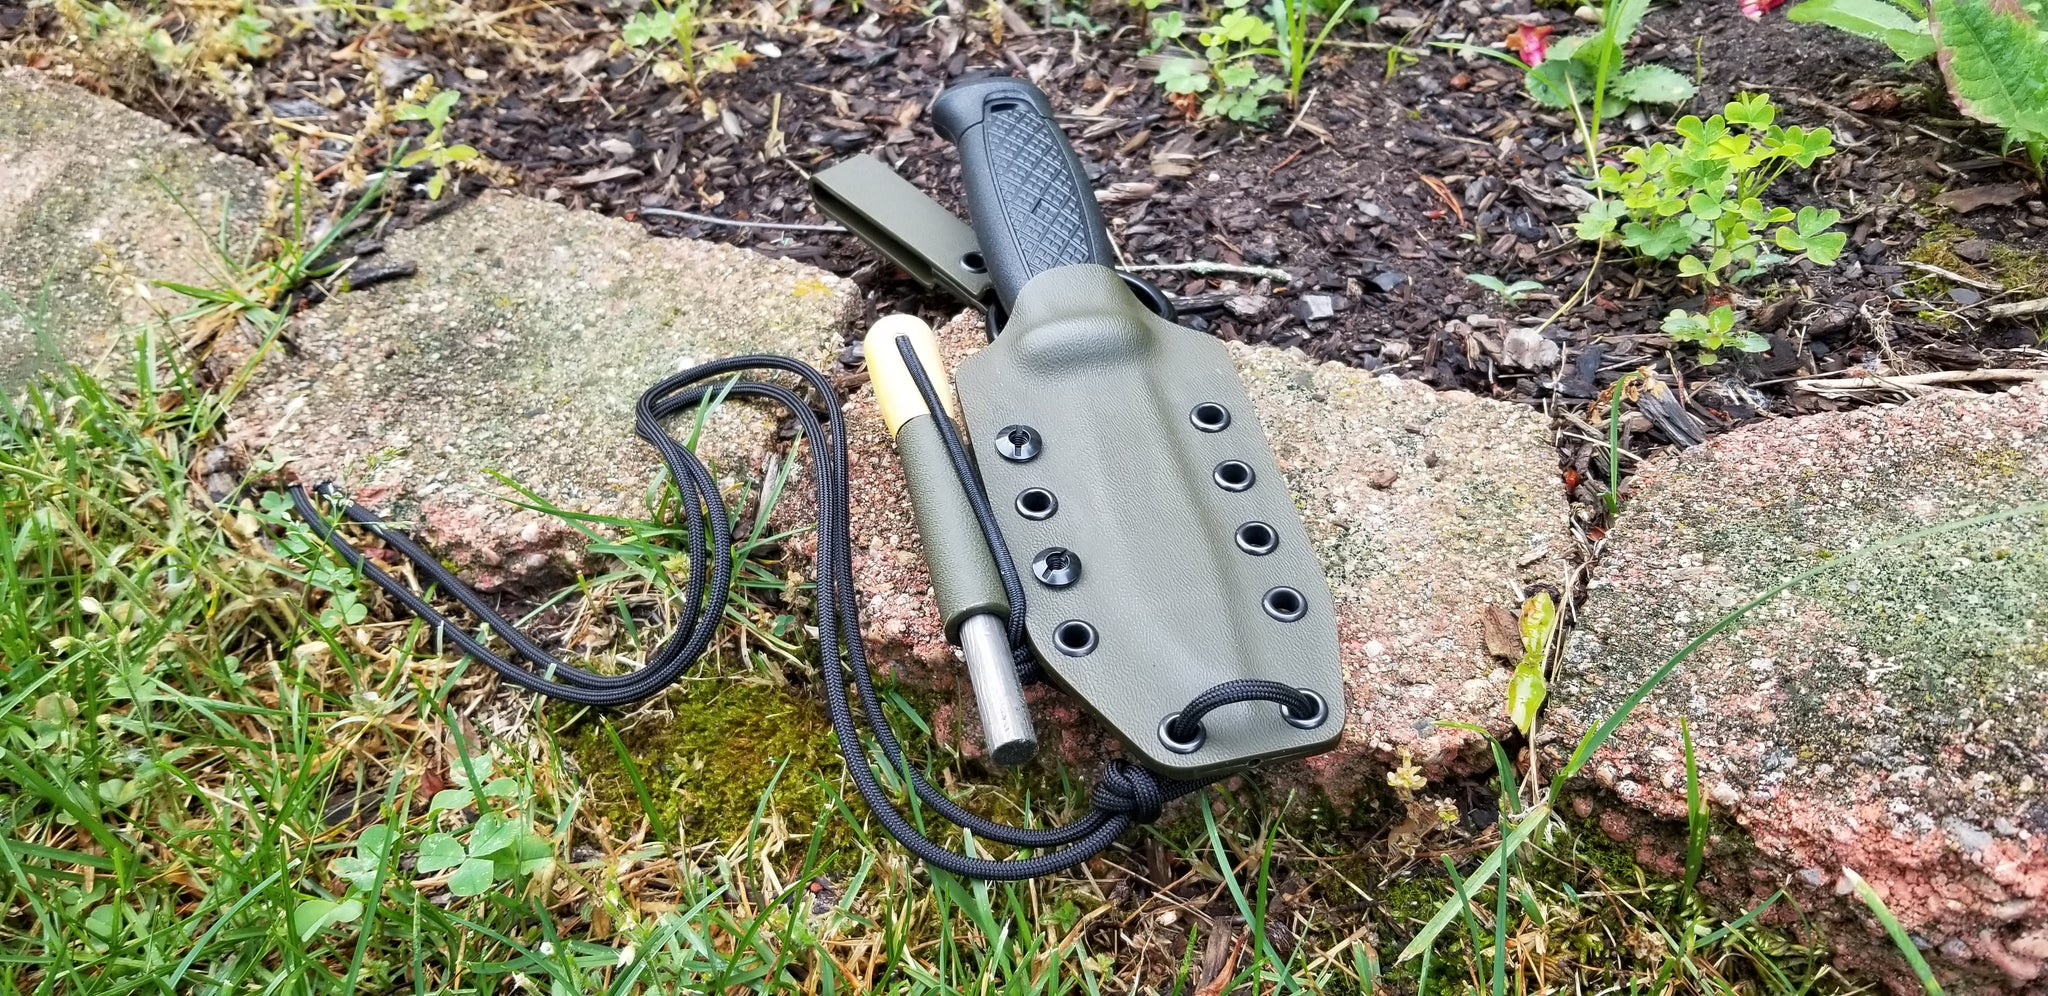 Mora Garberg custom kydex sheath with dangler and firesteel holder